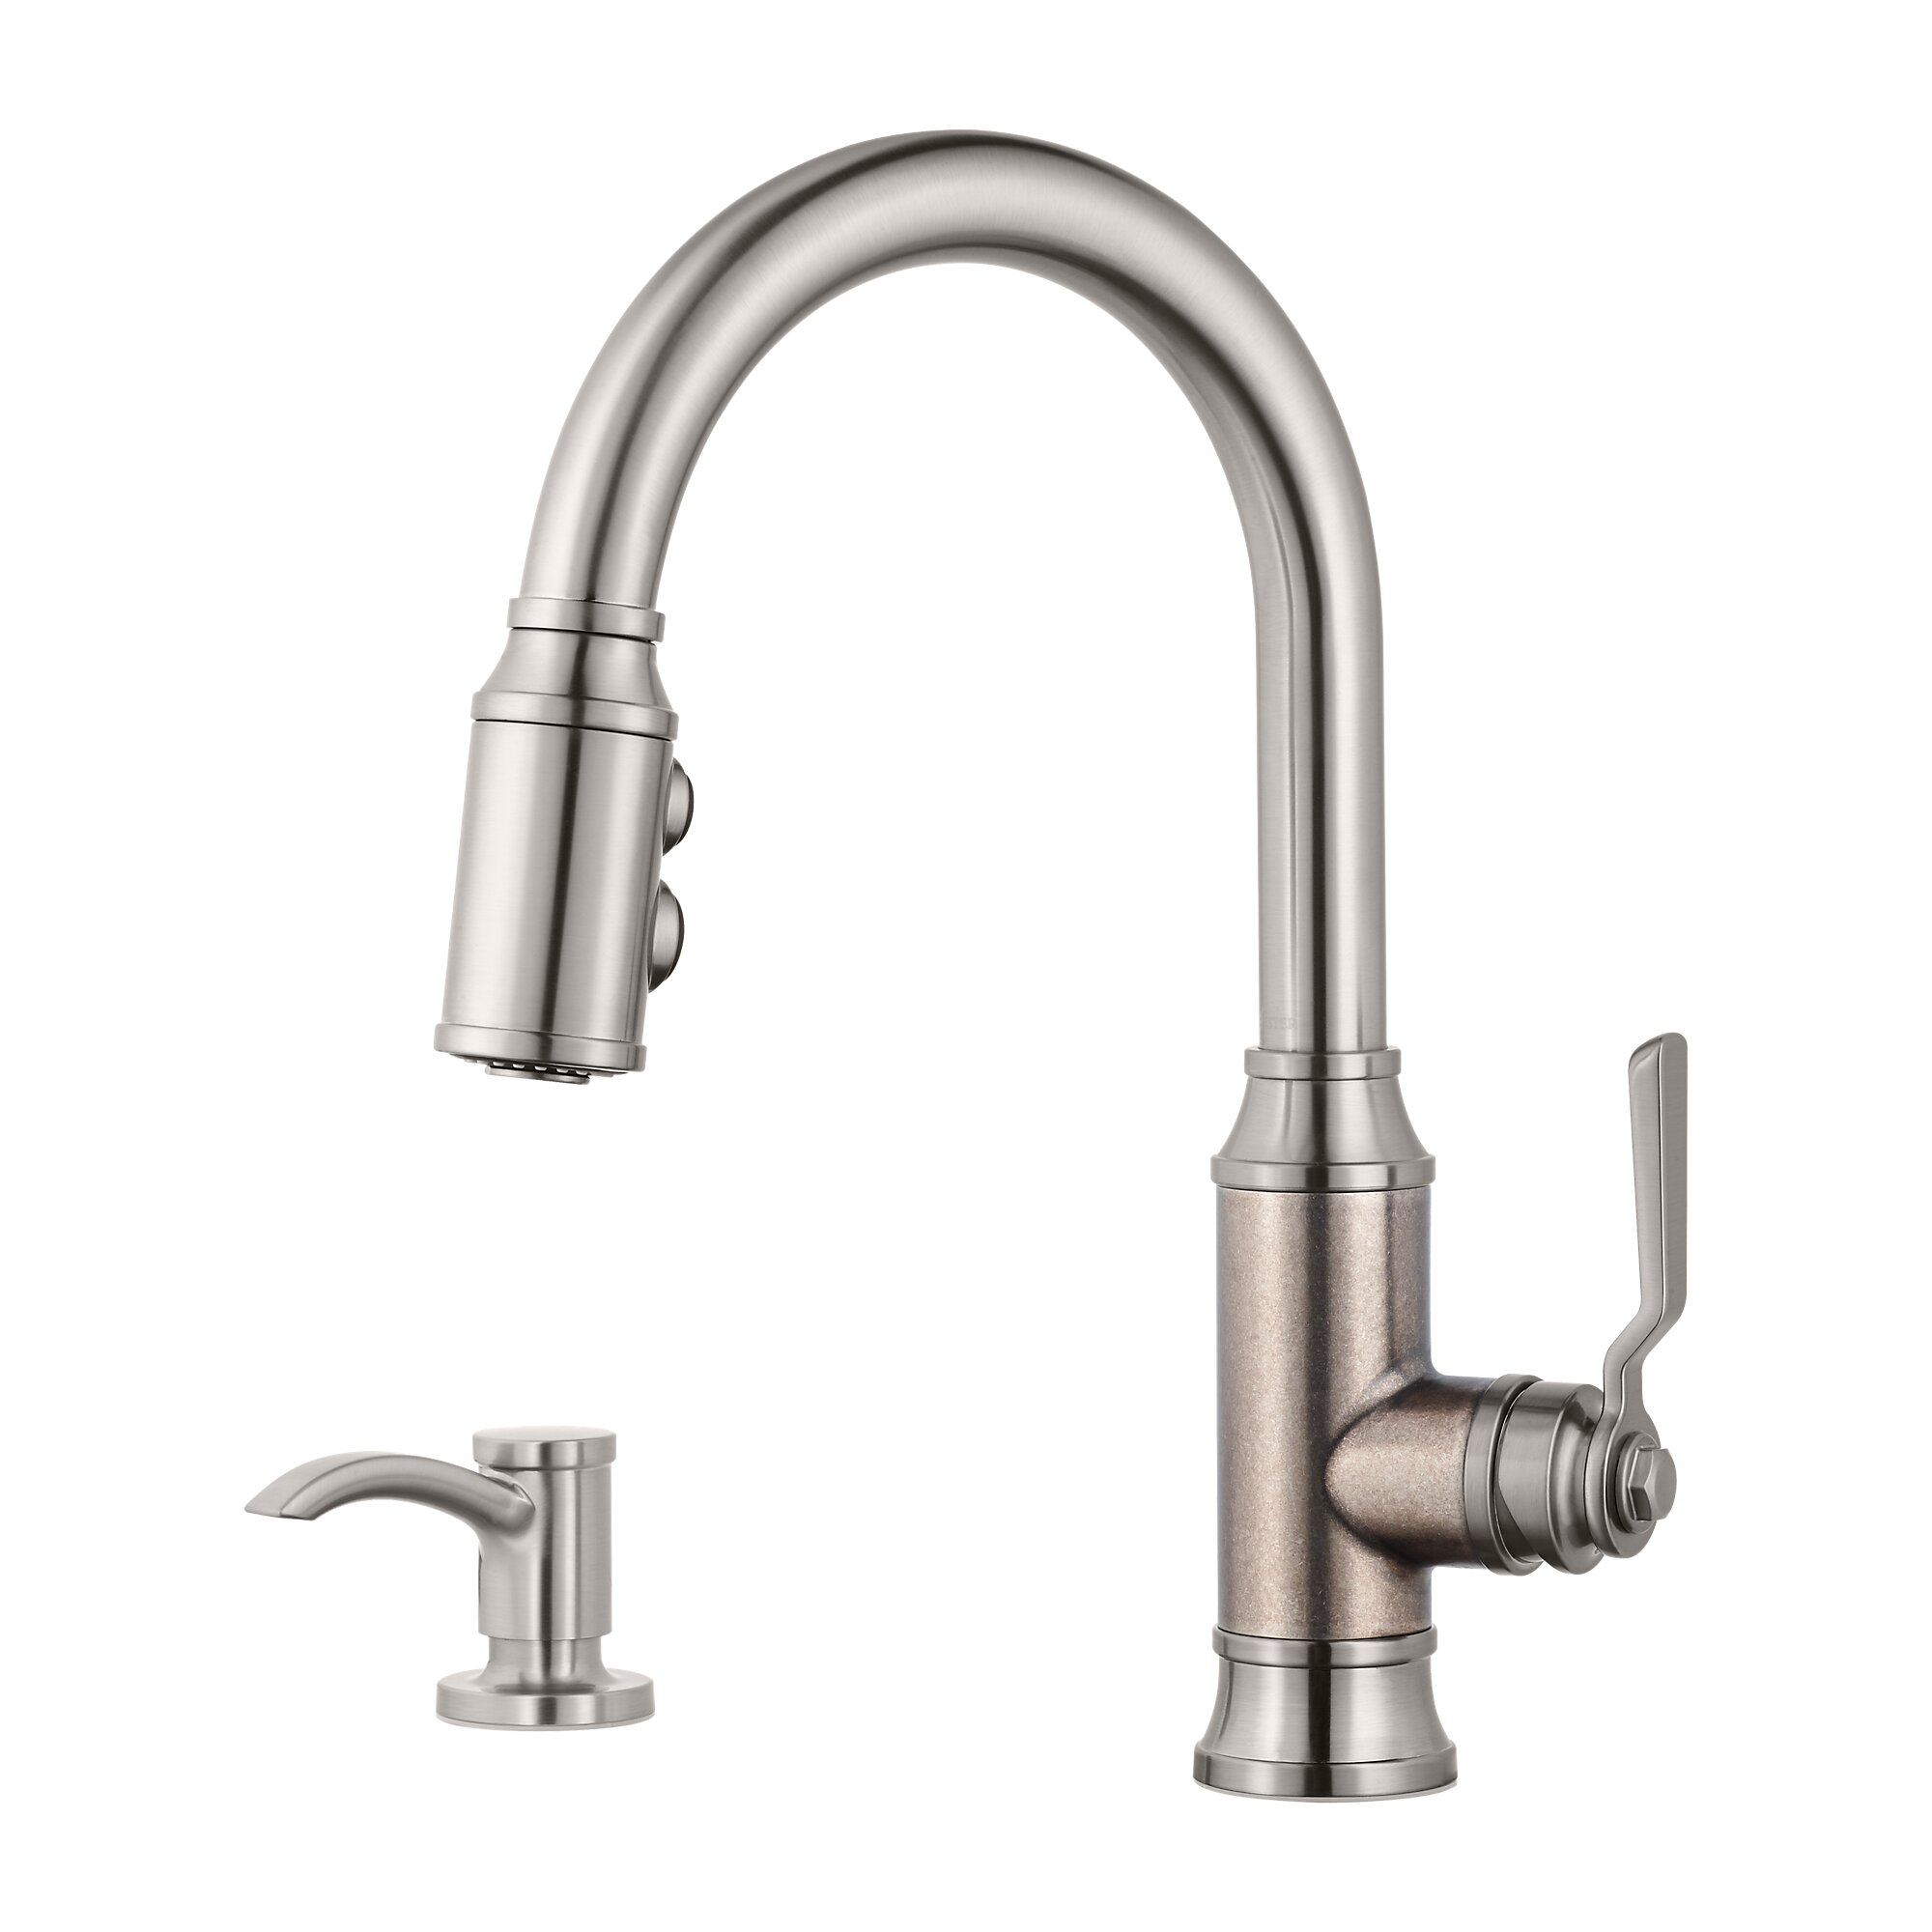 pfister f 529 7bcse breckenridge 15 1 4 inch single lever handle deck mount pull down kitchen faucet with soap dispenser stainless steel